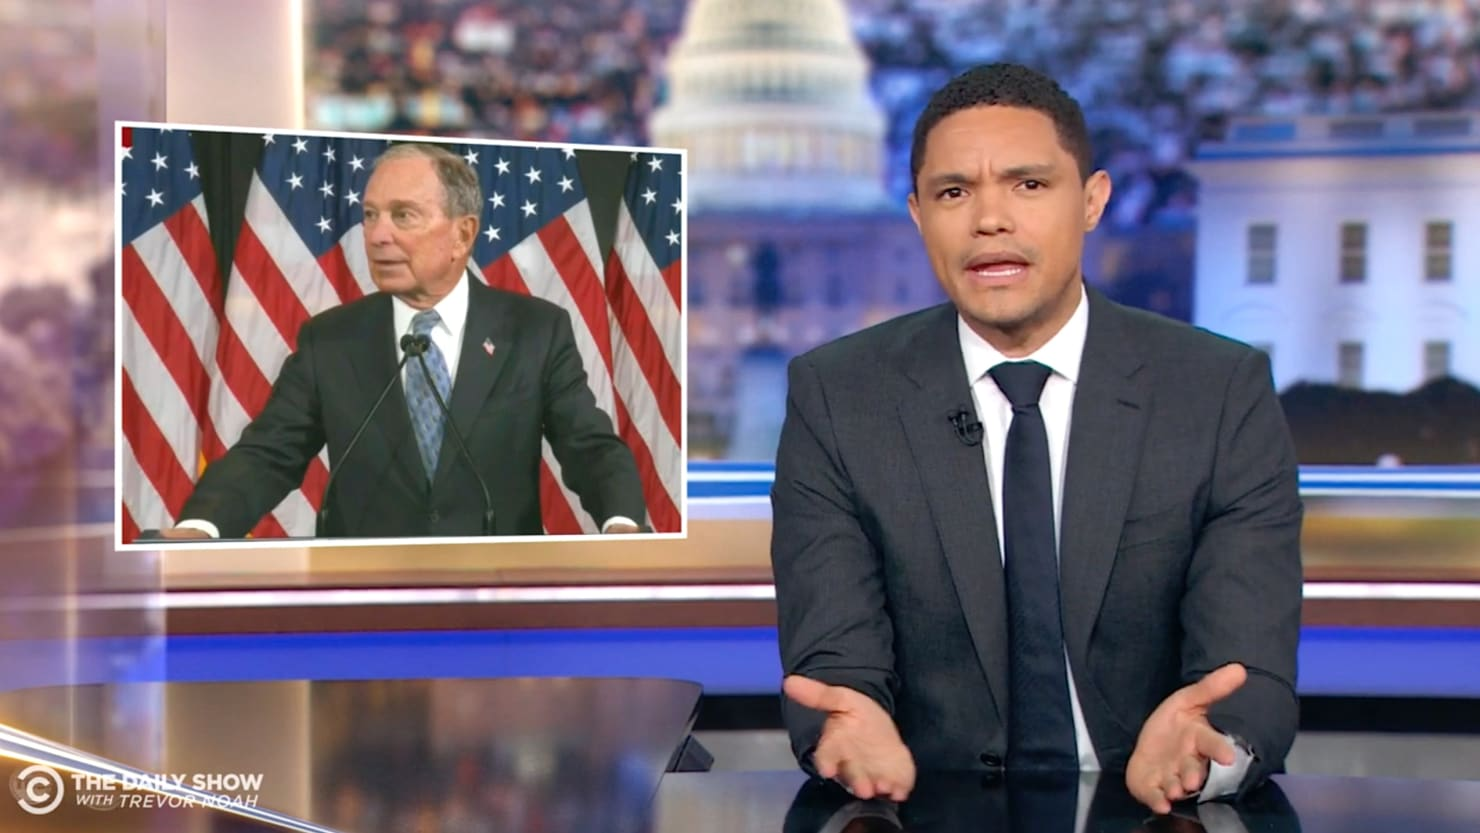 Trevor Noah Takes Mike Bloomberg to Task for Stop-and-Frisk